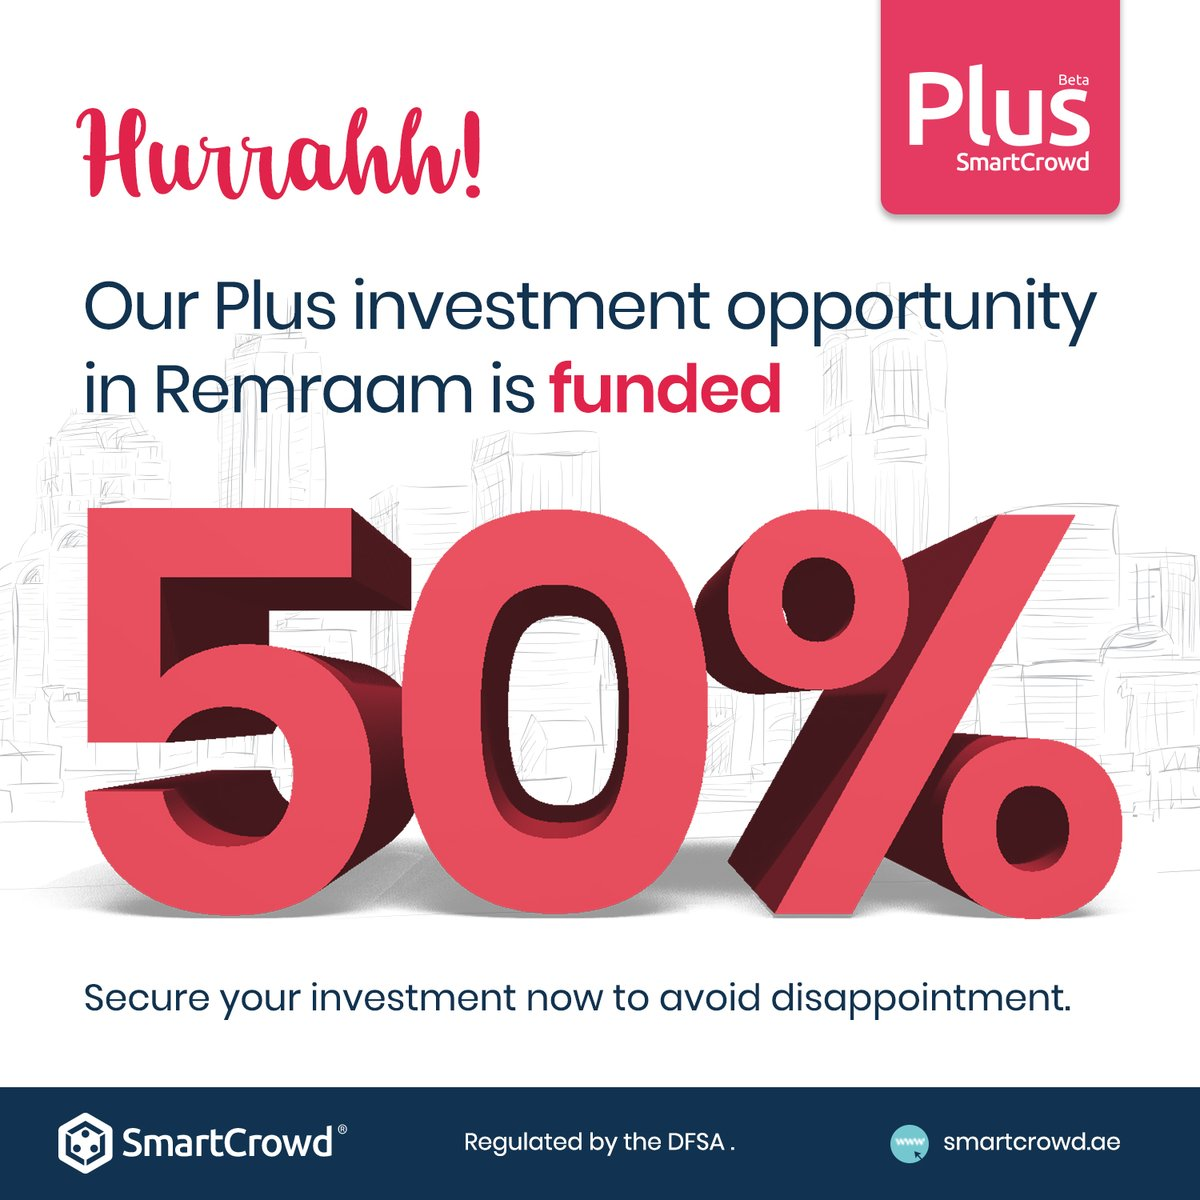 Hurrahh! Our Plus investment opportunity in Remraam is now 50% funded! Secure your investment now to avoid disappointment.  #realestate #investments #property #dubai #fintech #crowdfunding #dubailife #mydubai #wealth #innovation #futureisnow #uae #mydubai #financialfreedompic.twitter.com/6UztXSvFsh